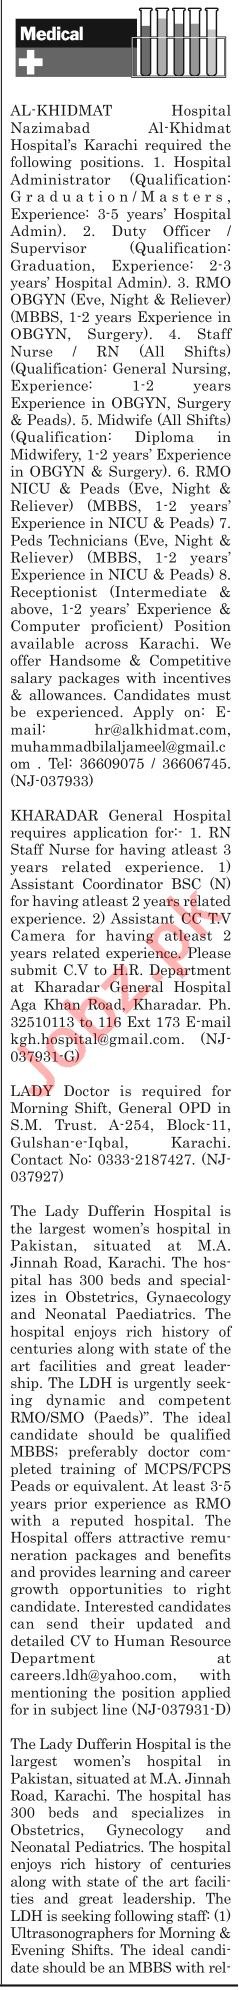 The News Sunday Classified Ads 14th July 2019 Medical Staff